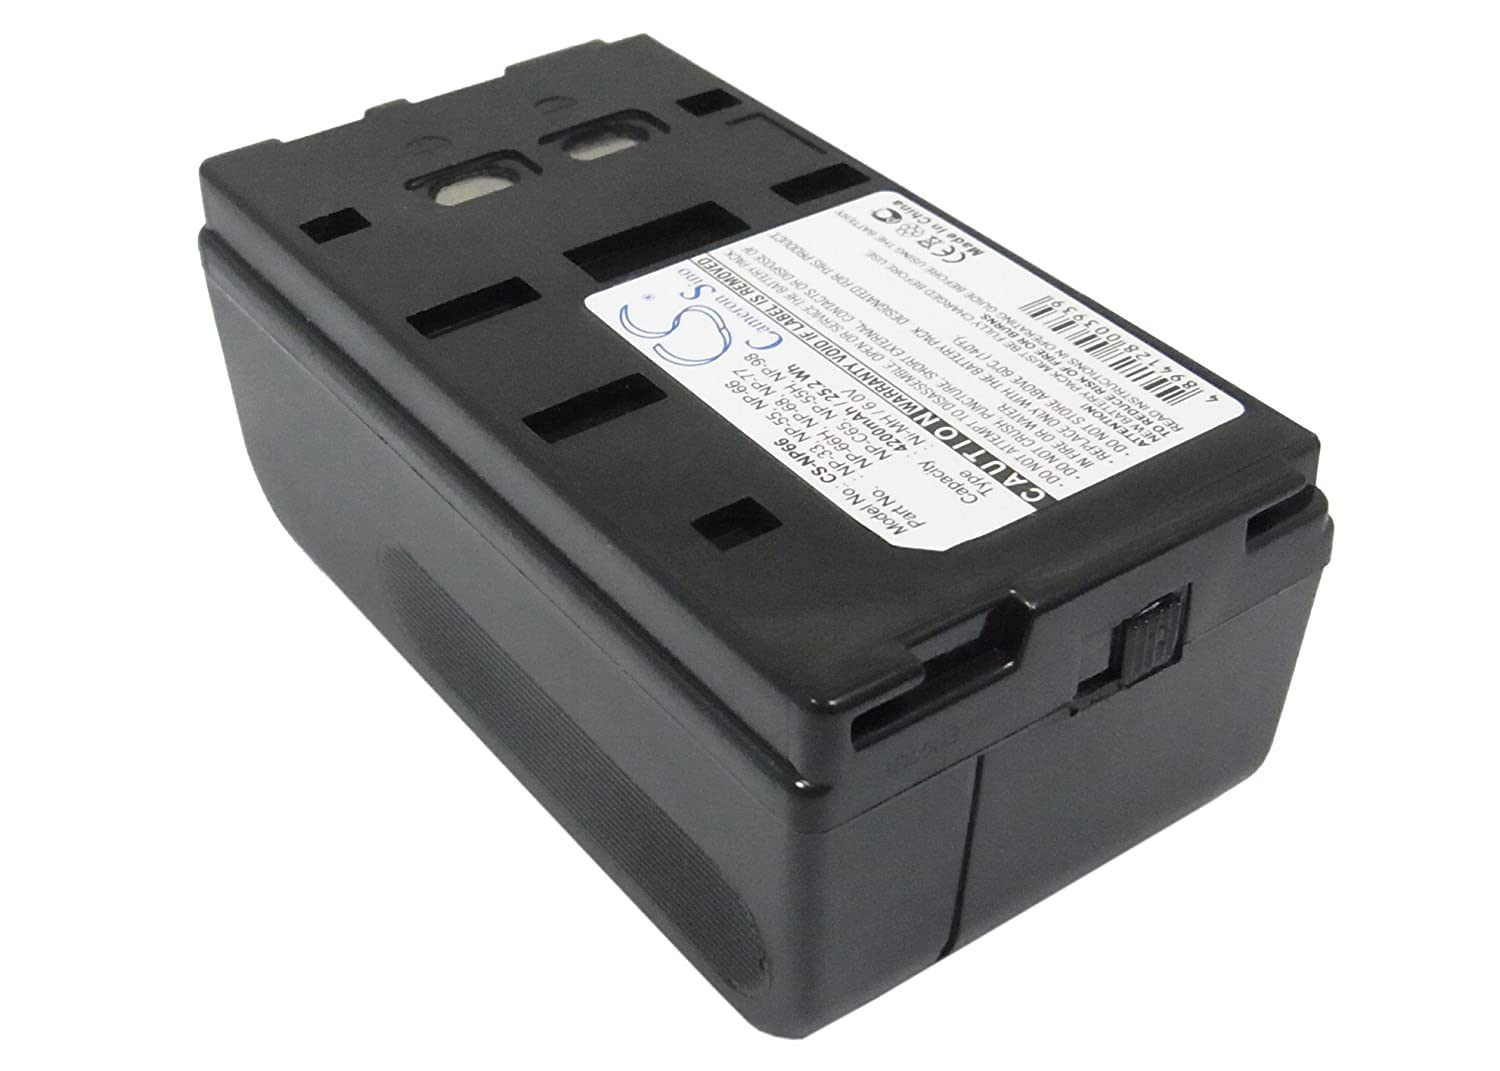 Cameron Sino Rechargeble Battery for Sony ccd-fx300e ( 4200 mAh )   B01DNNMGS4